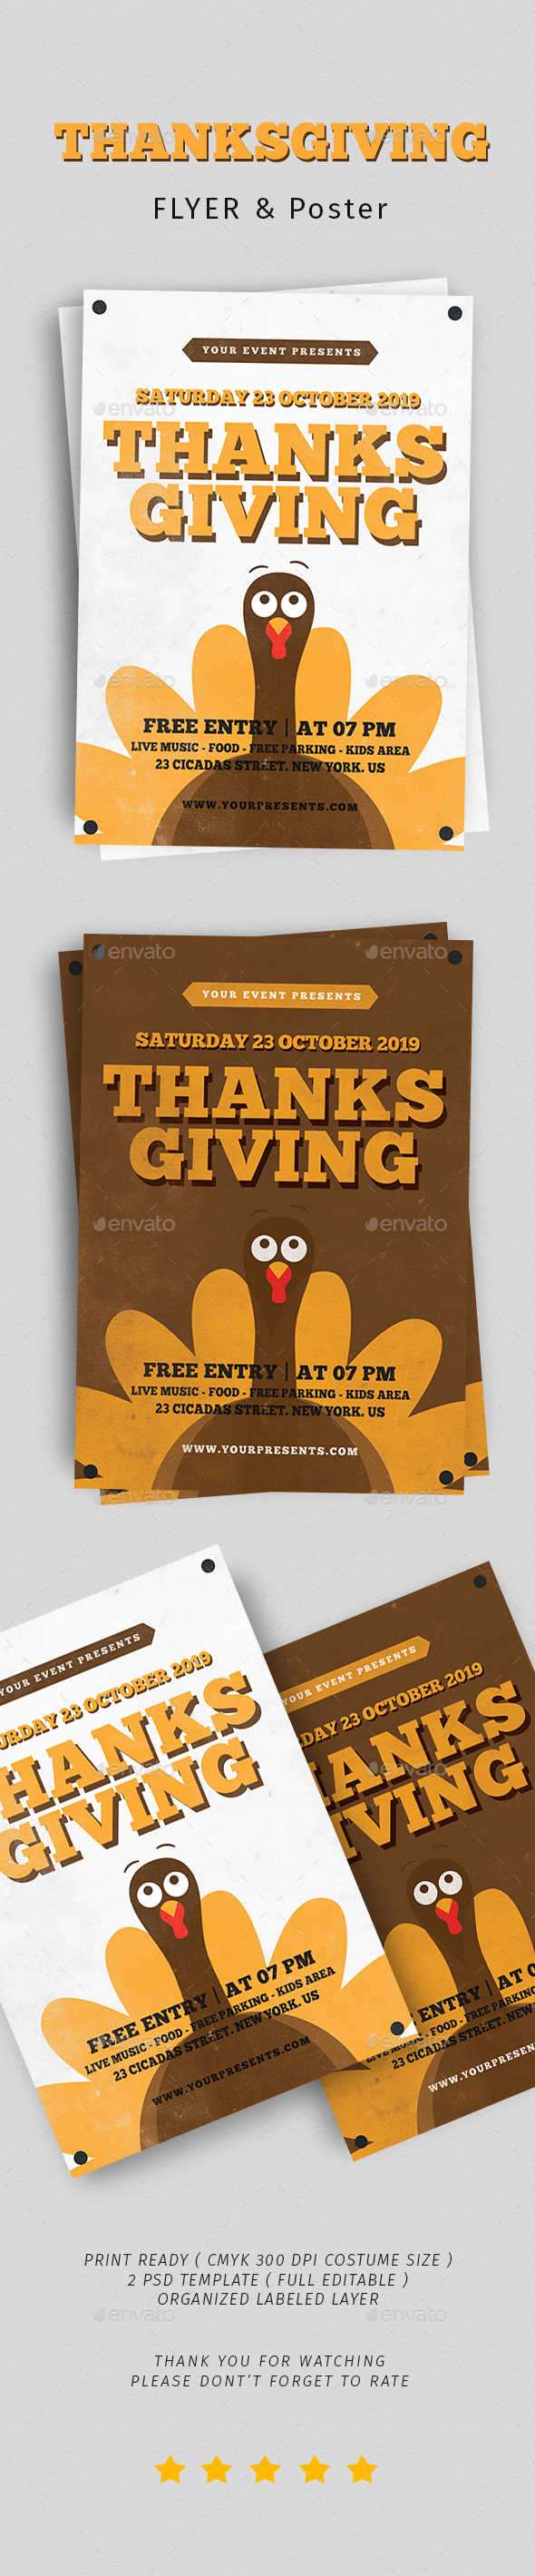 Thanksgiving Flyer Vol. 5